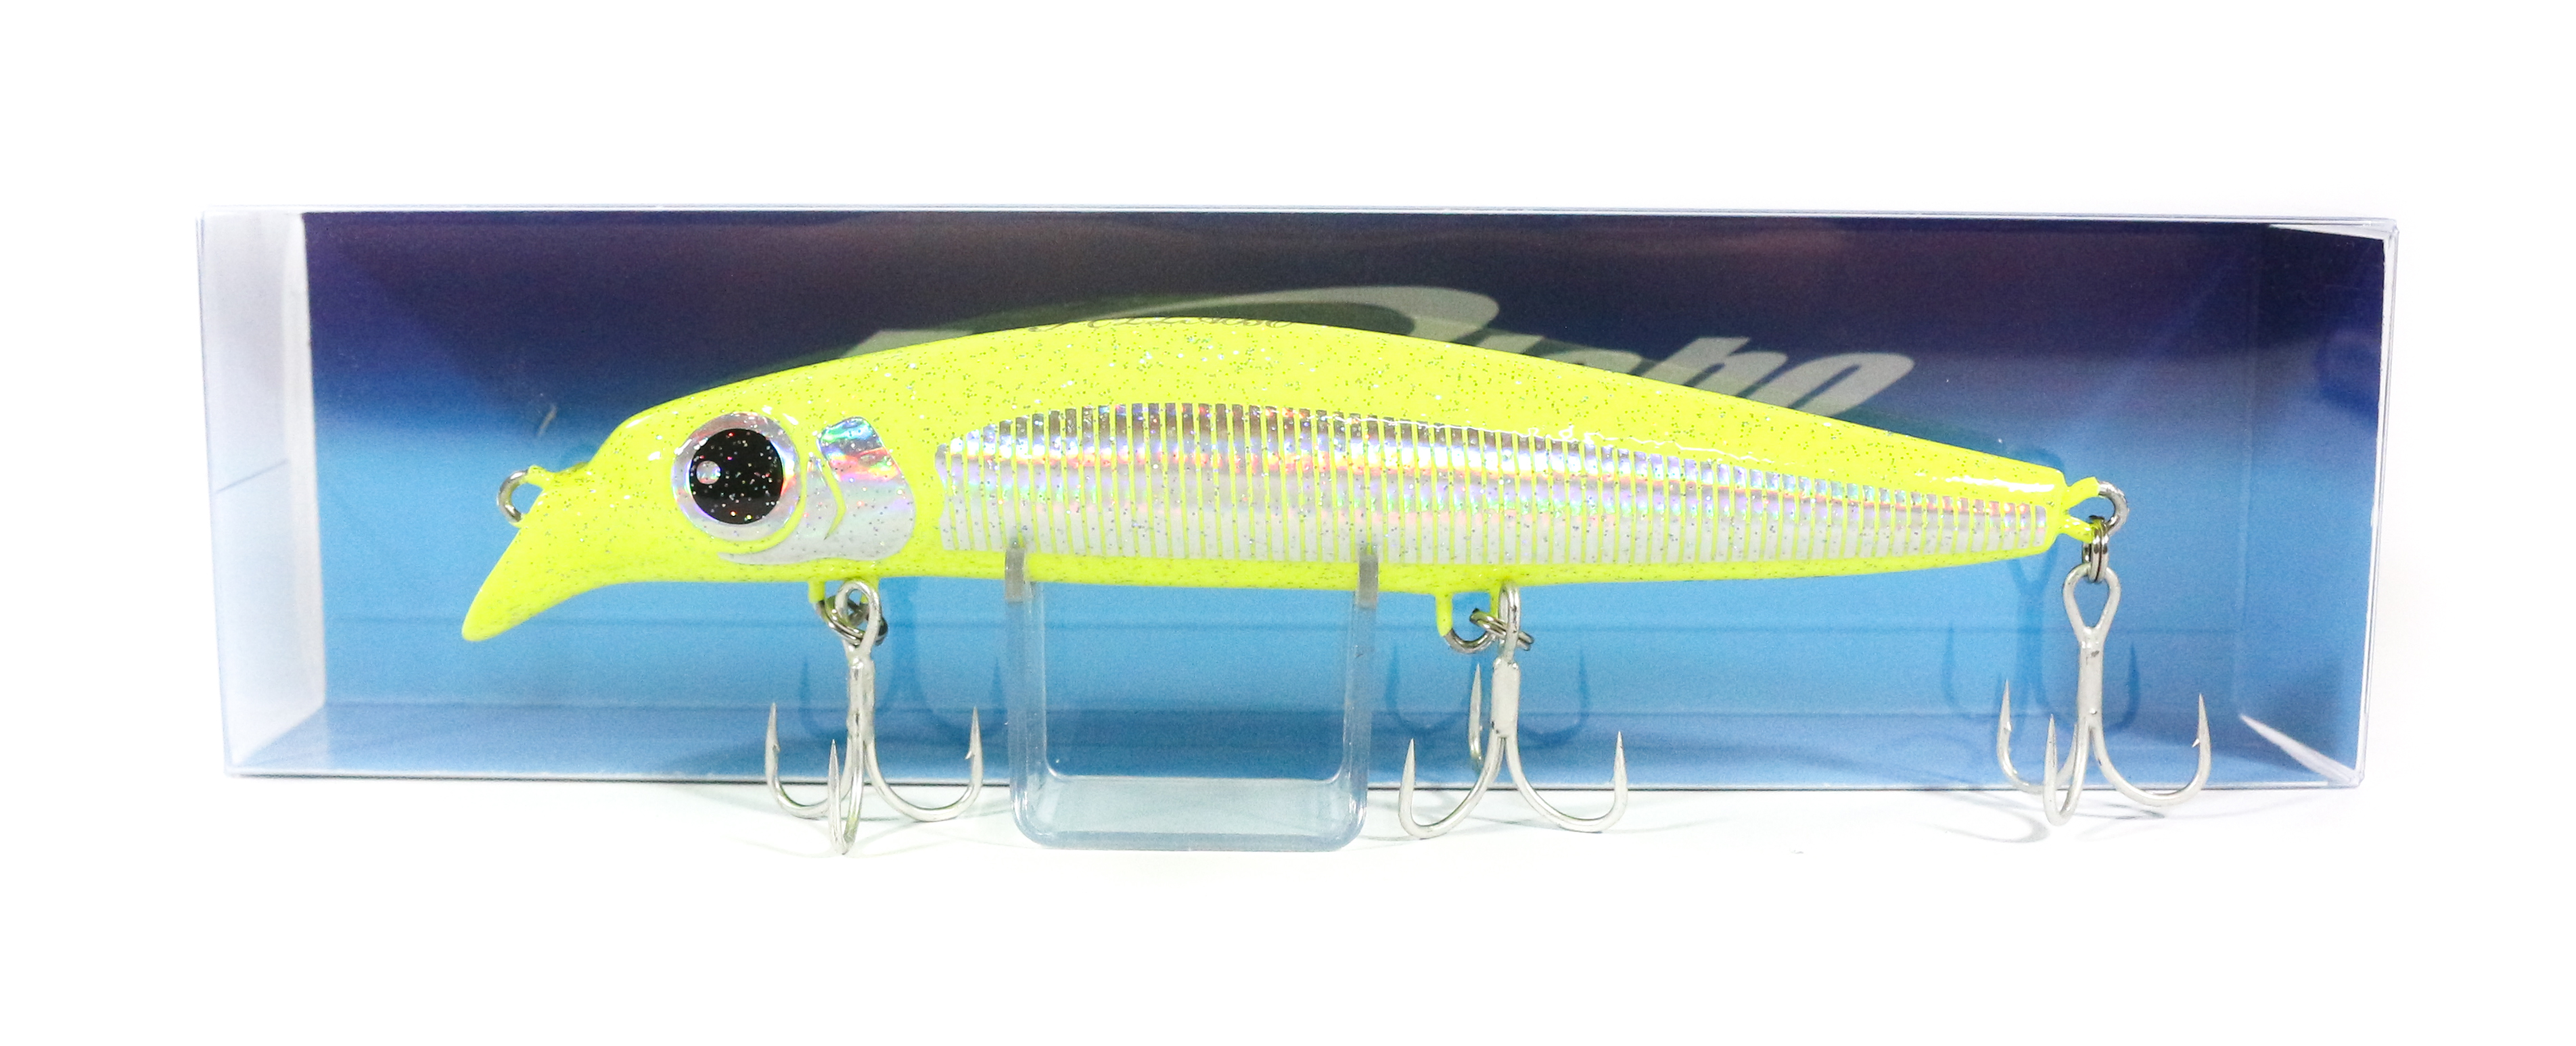 FCL Labo Lure HRTM 140T Floating Lure 20 grams ACH (8098)